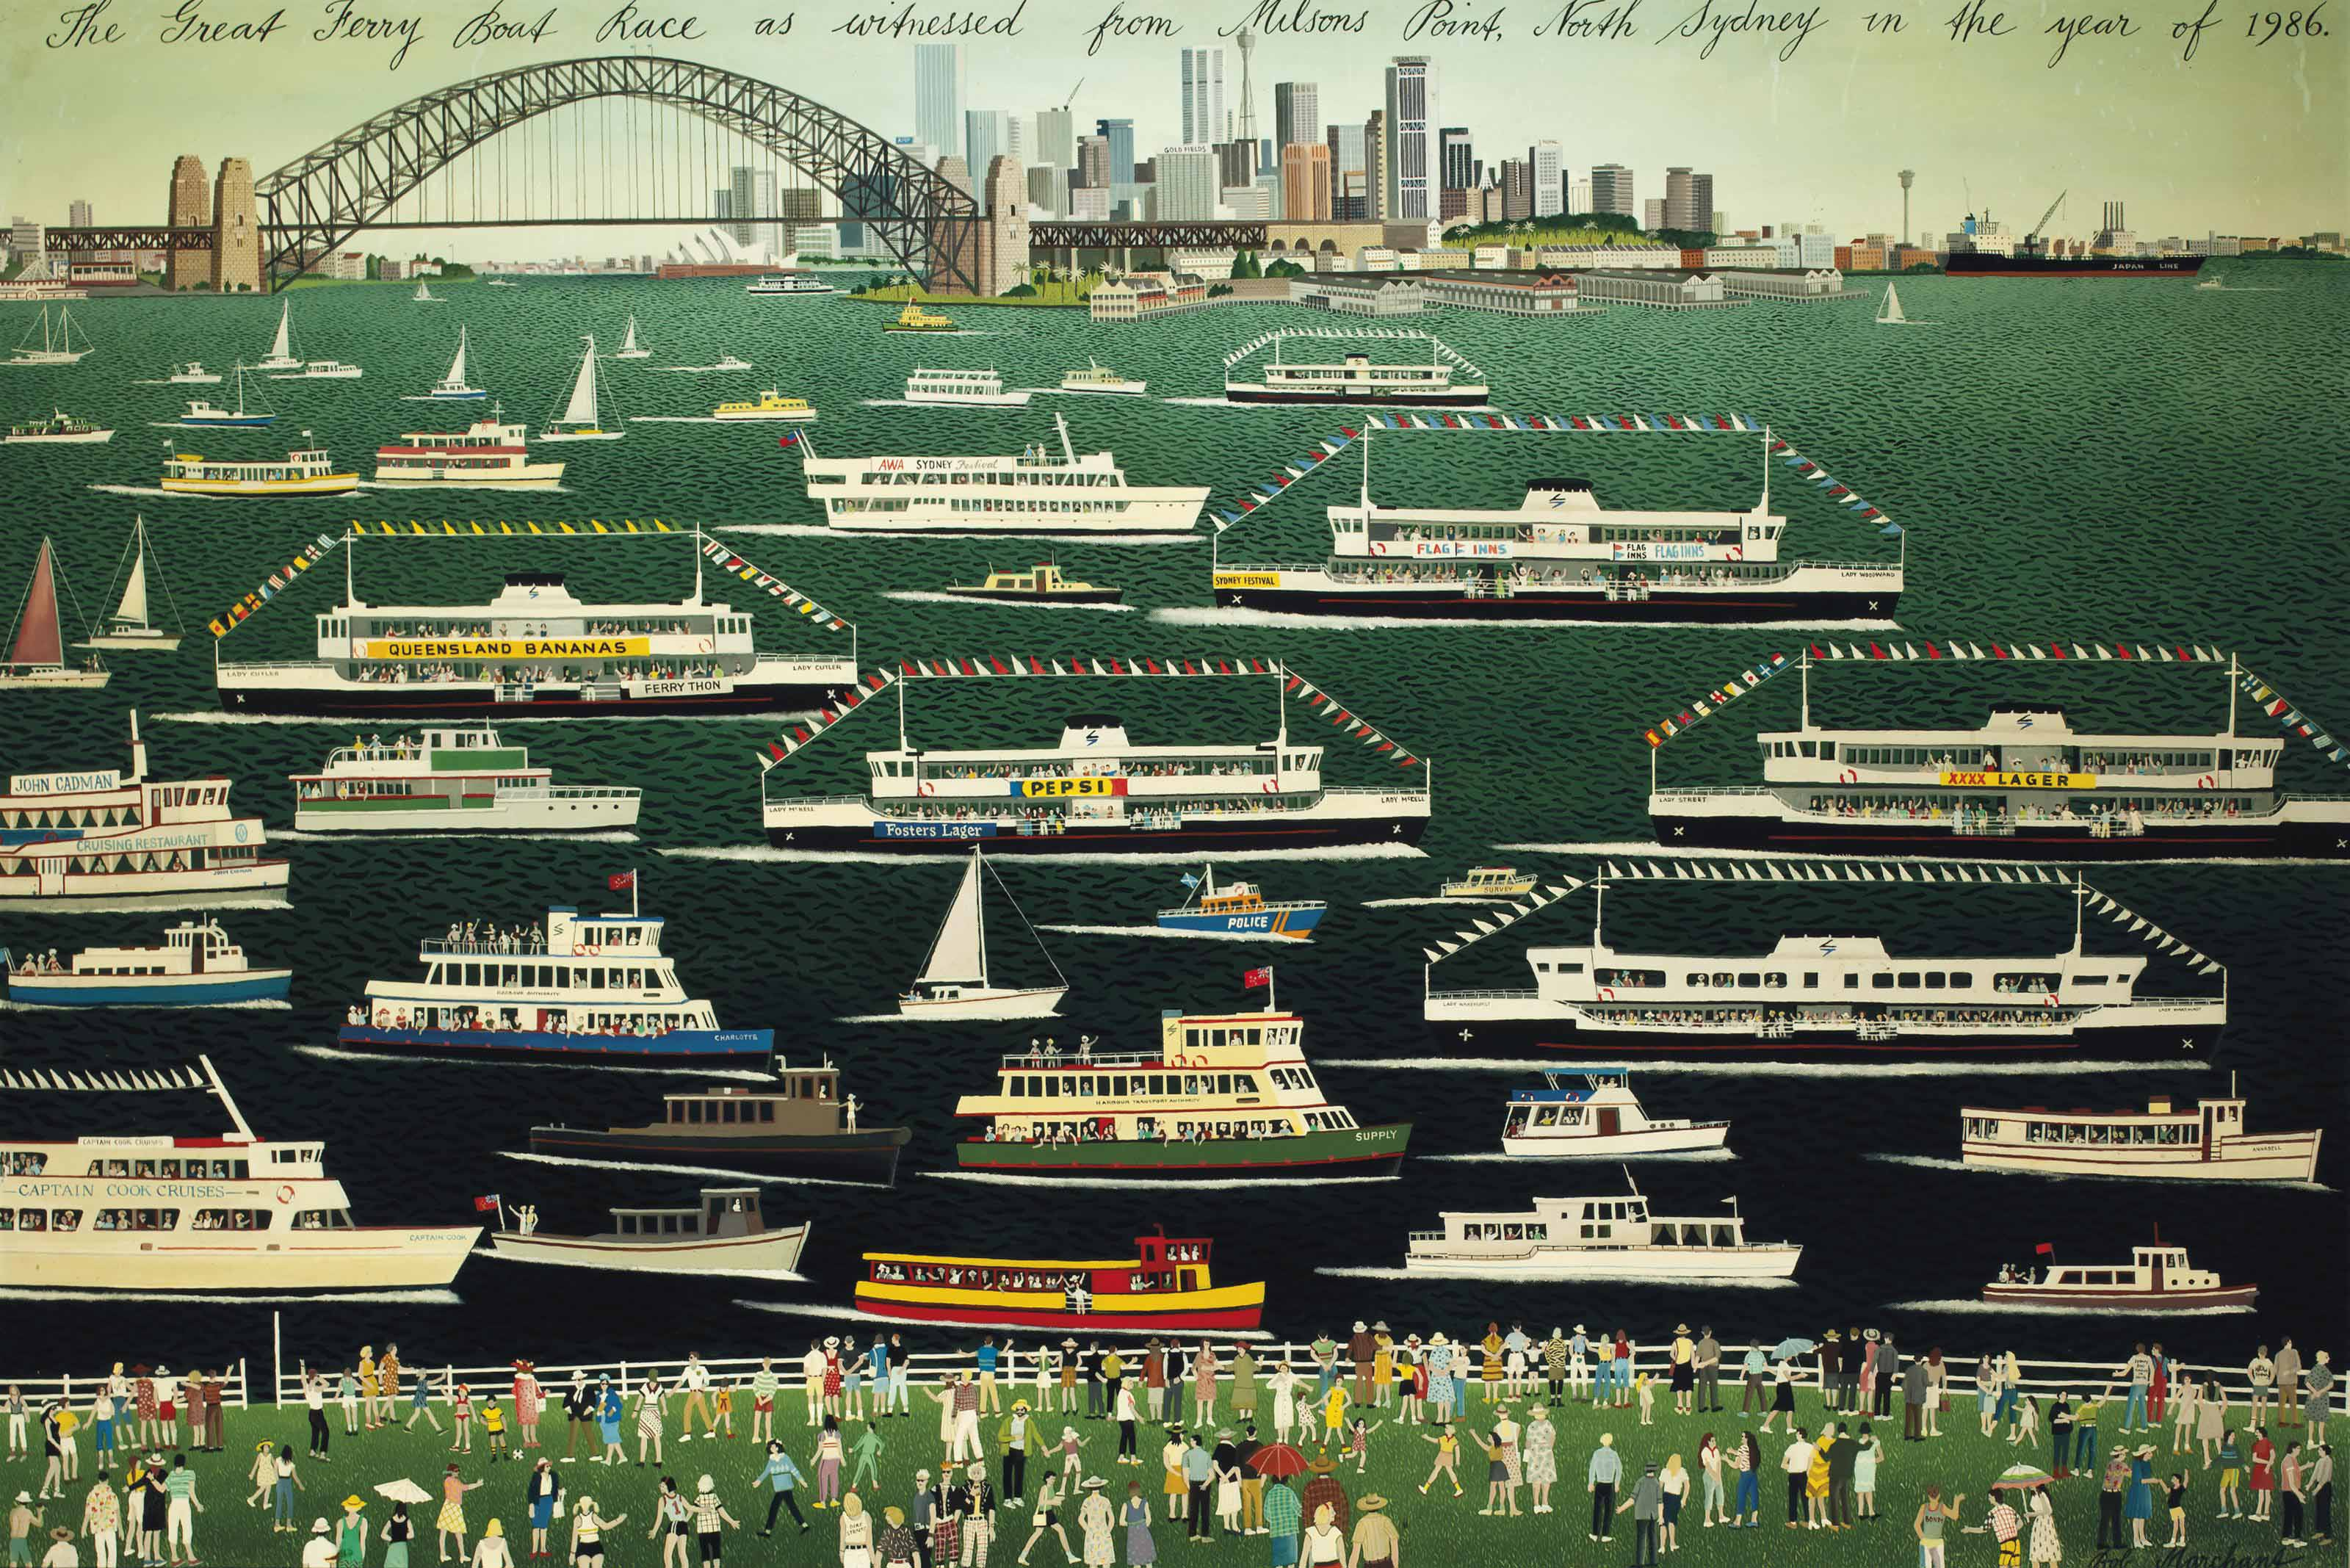 The Great Ferry Boat Race as witnessed from Milson's Point, North Sydney in the year of 1986